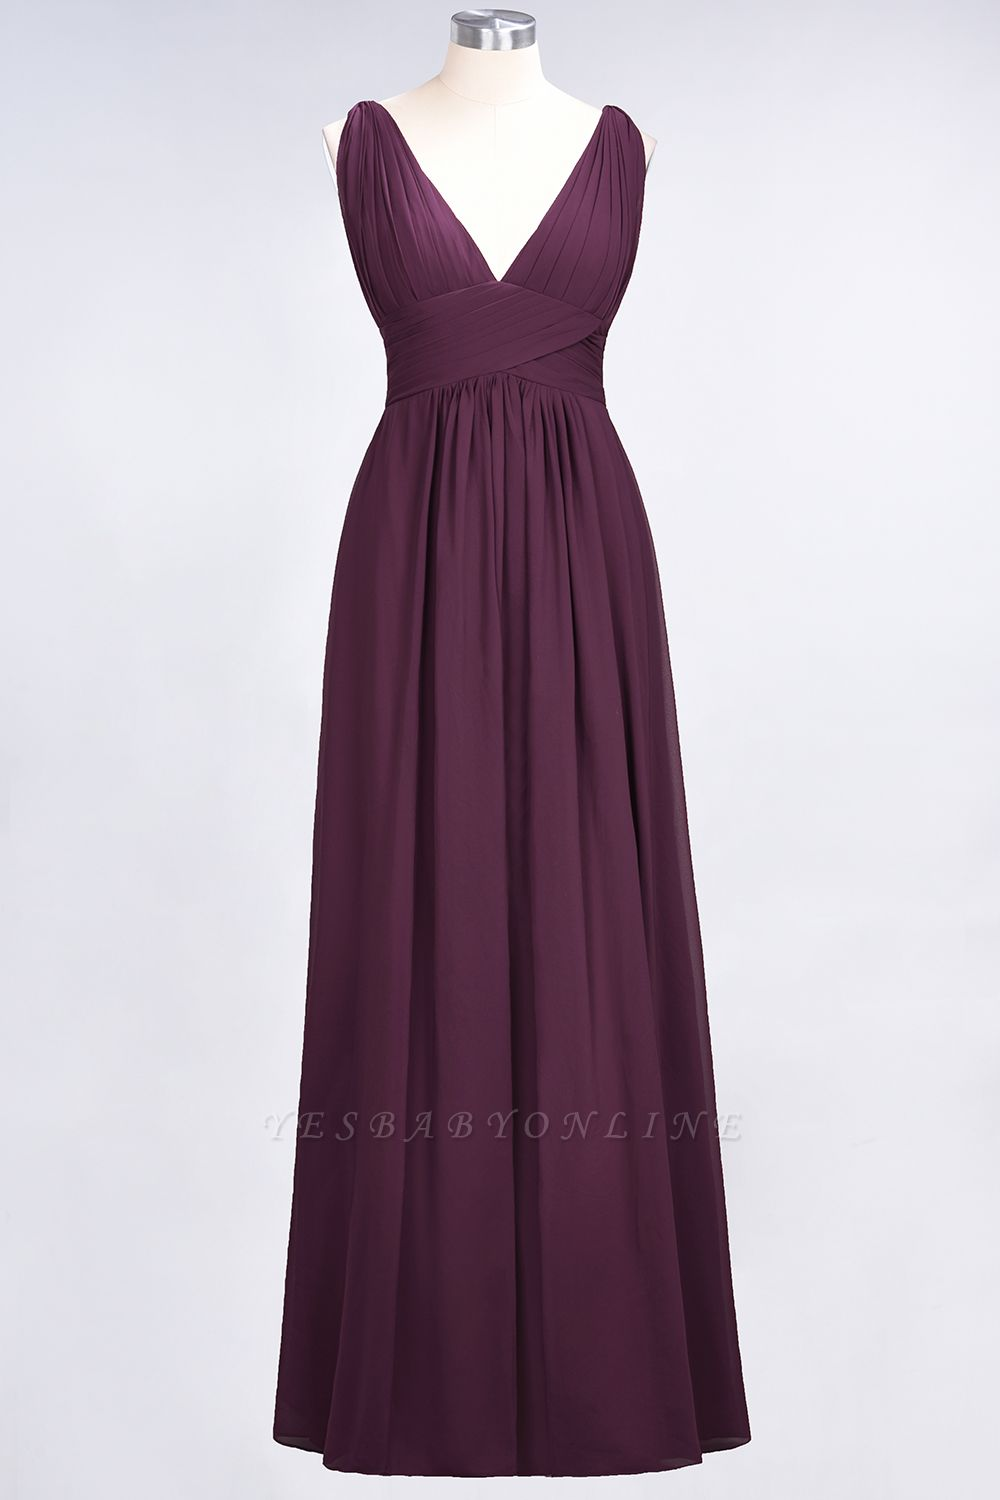 A-Line V-Neck Sleeveless Floor-Length  Bridesmaid Dress with Ruffle